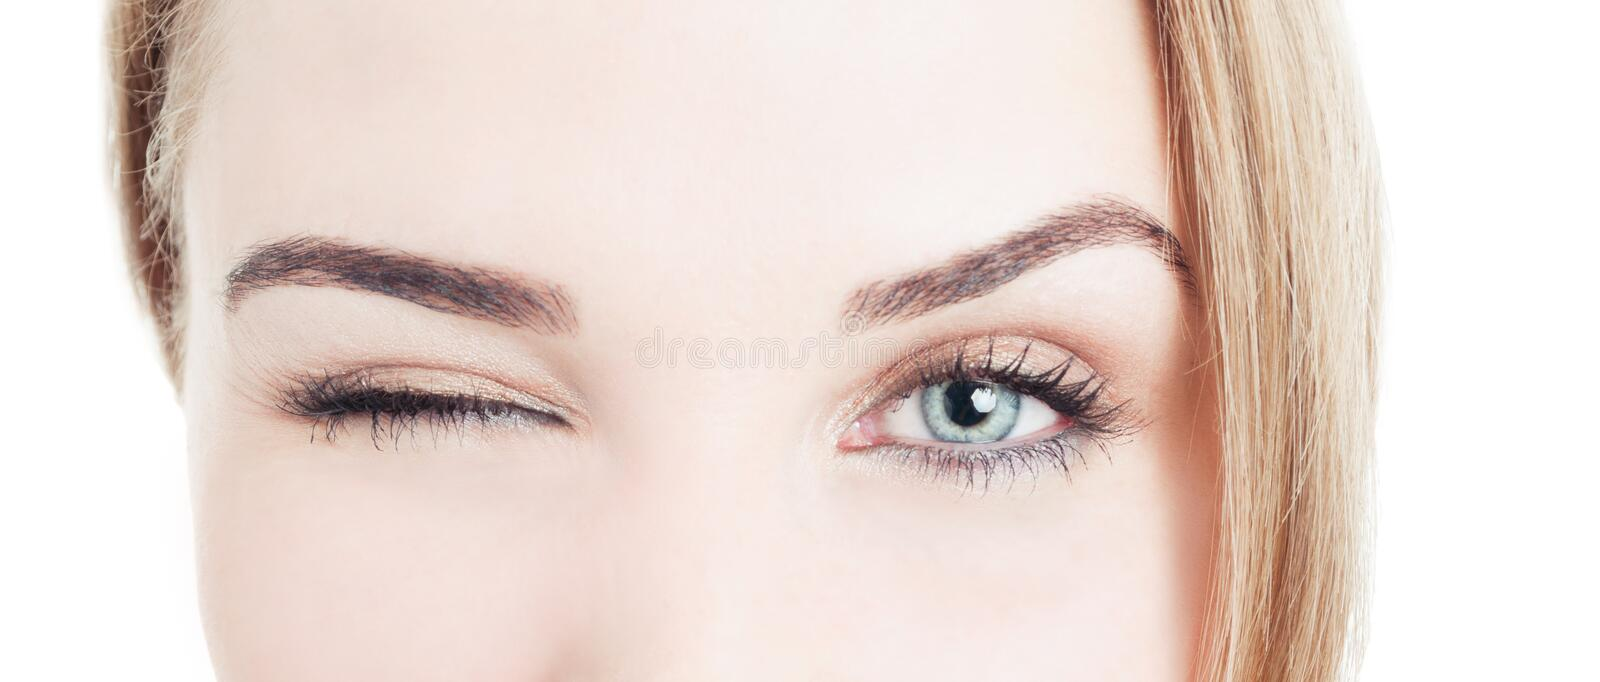 Close-up with beautiful woman eyes and wink stock images